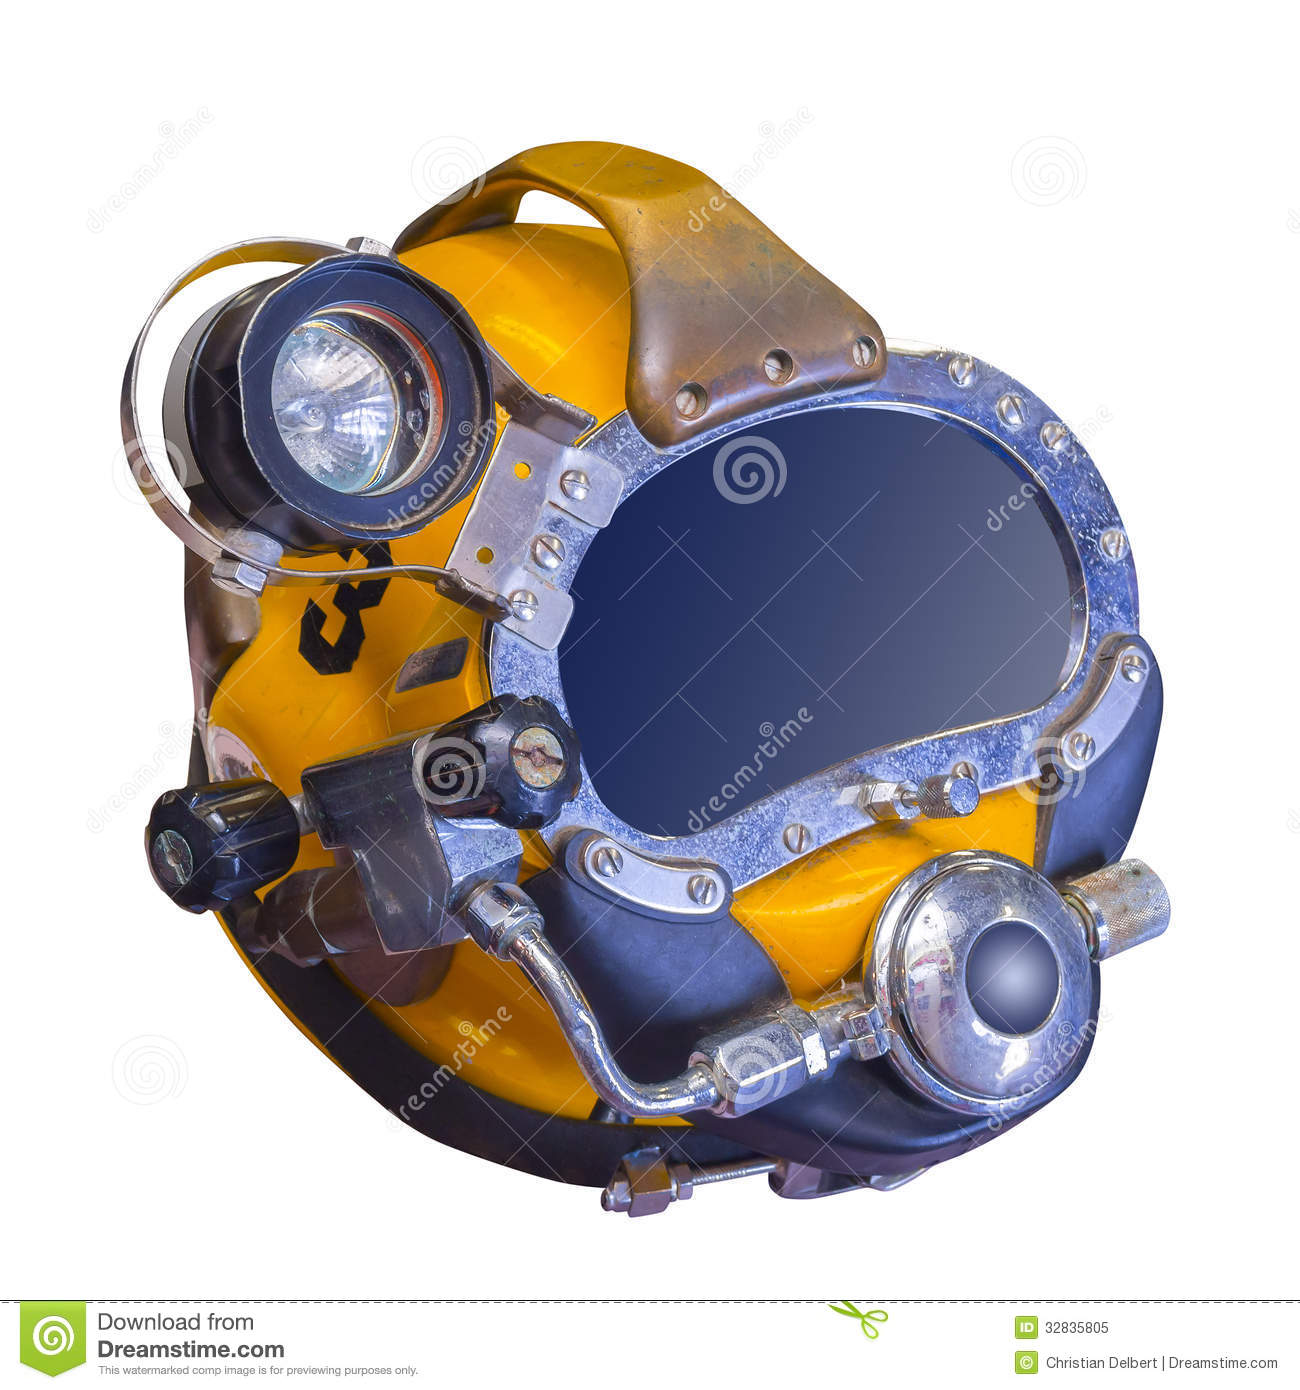 Modern Deep Sea Diving Helmet Used To Go Down To 1500 Feet